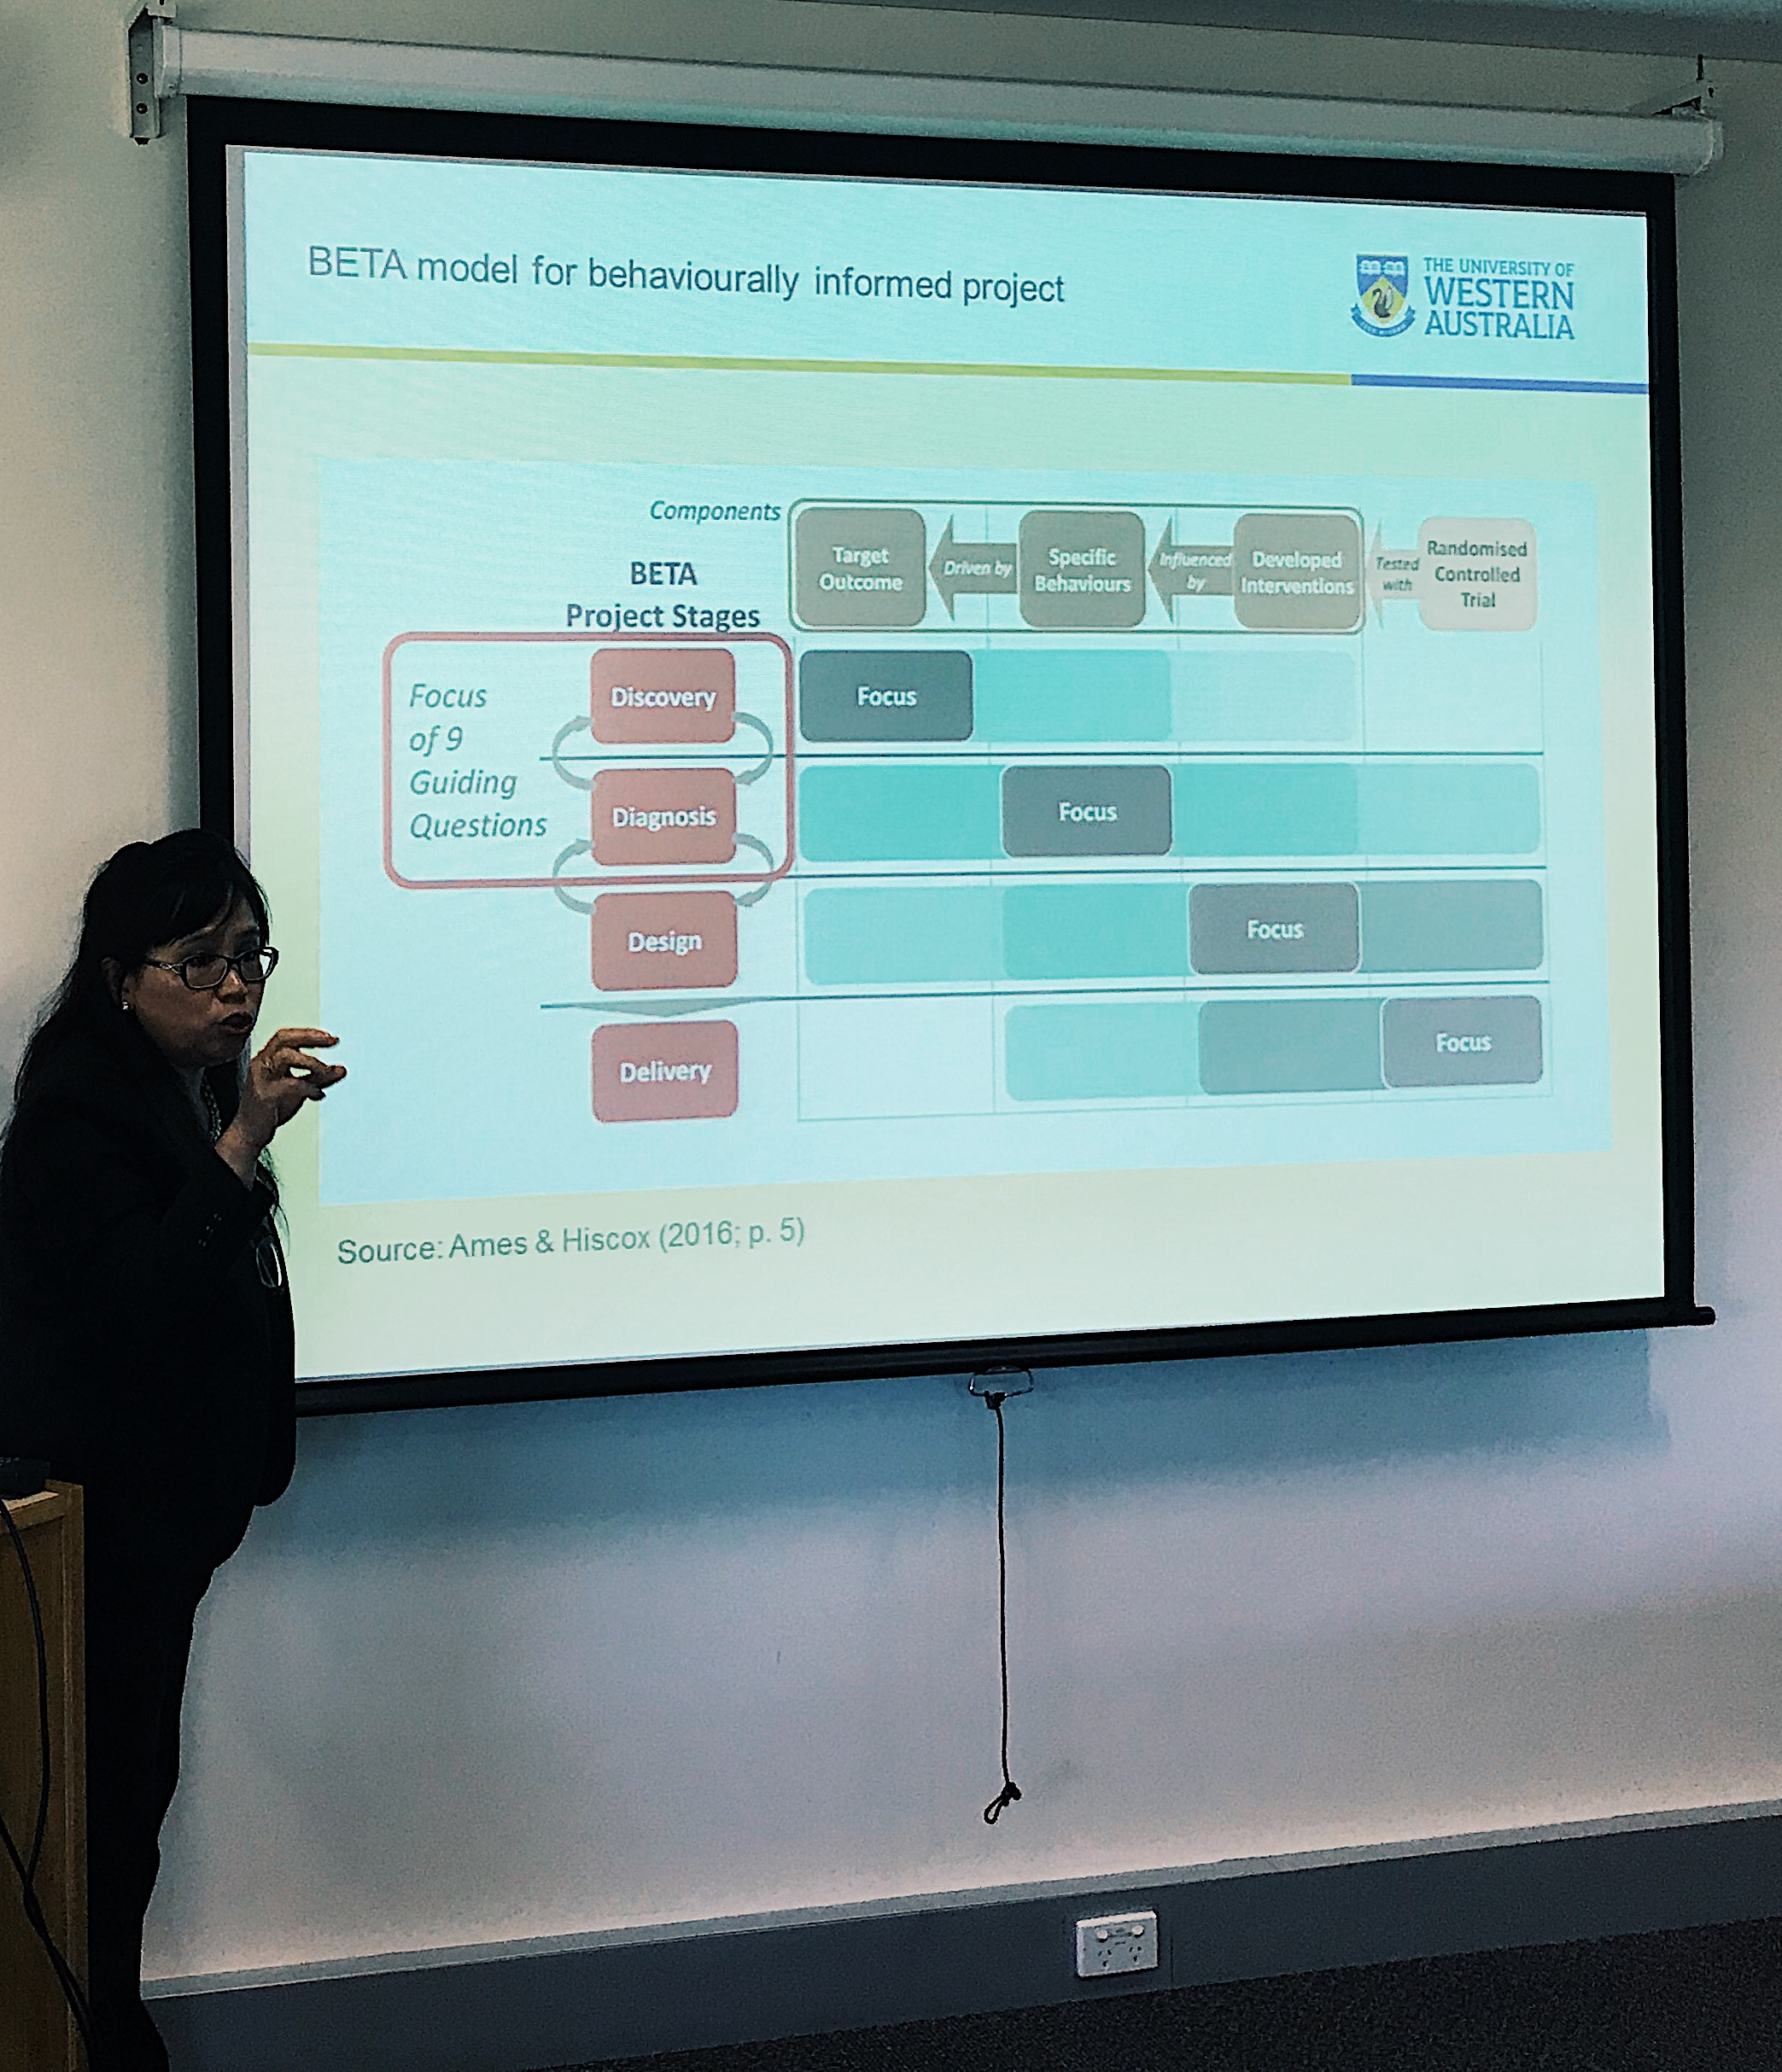 Associate Professor Fay Role-Rubzen outlines the project approach using the model developed by the Behavioural Economics Team of the Australian government (BETA).